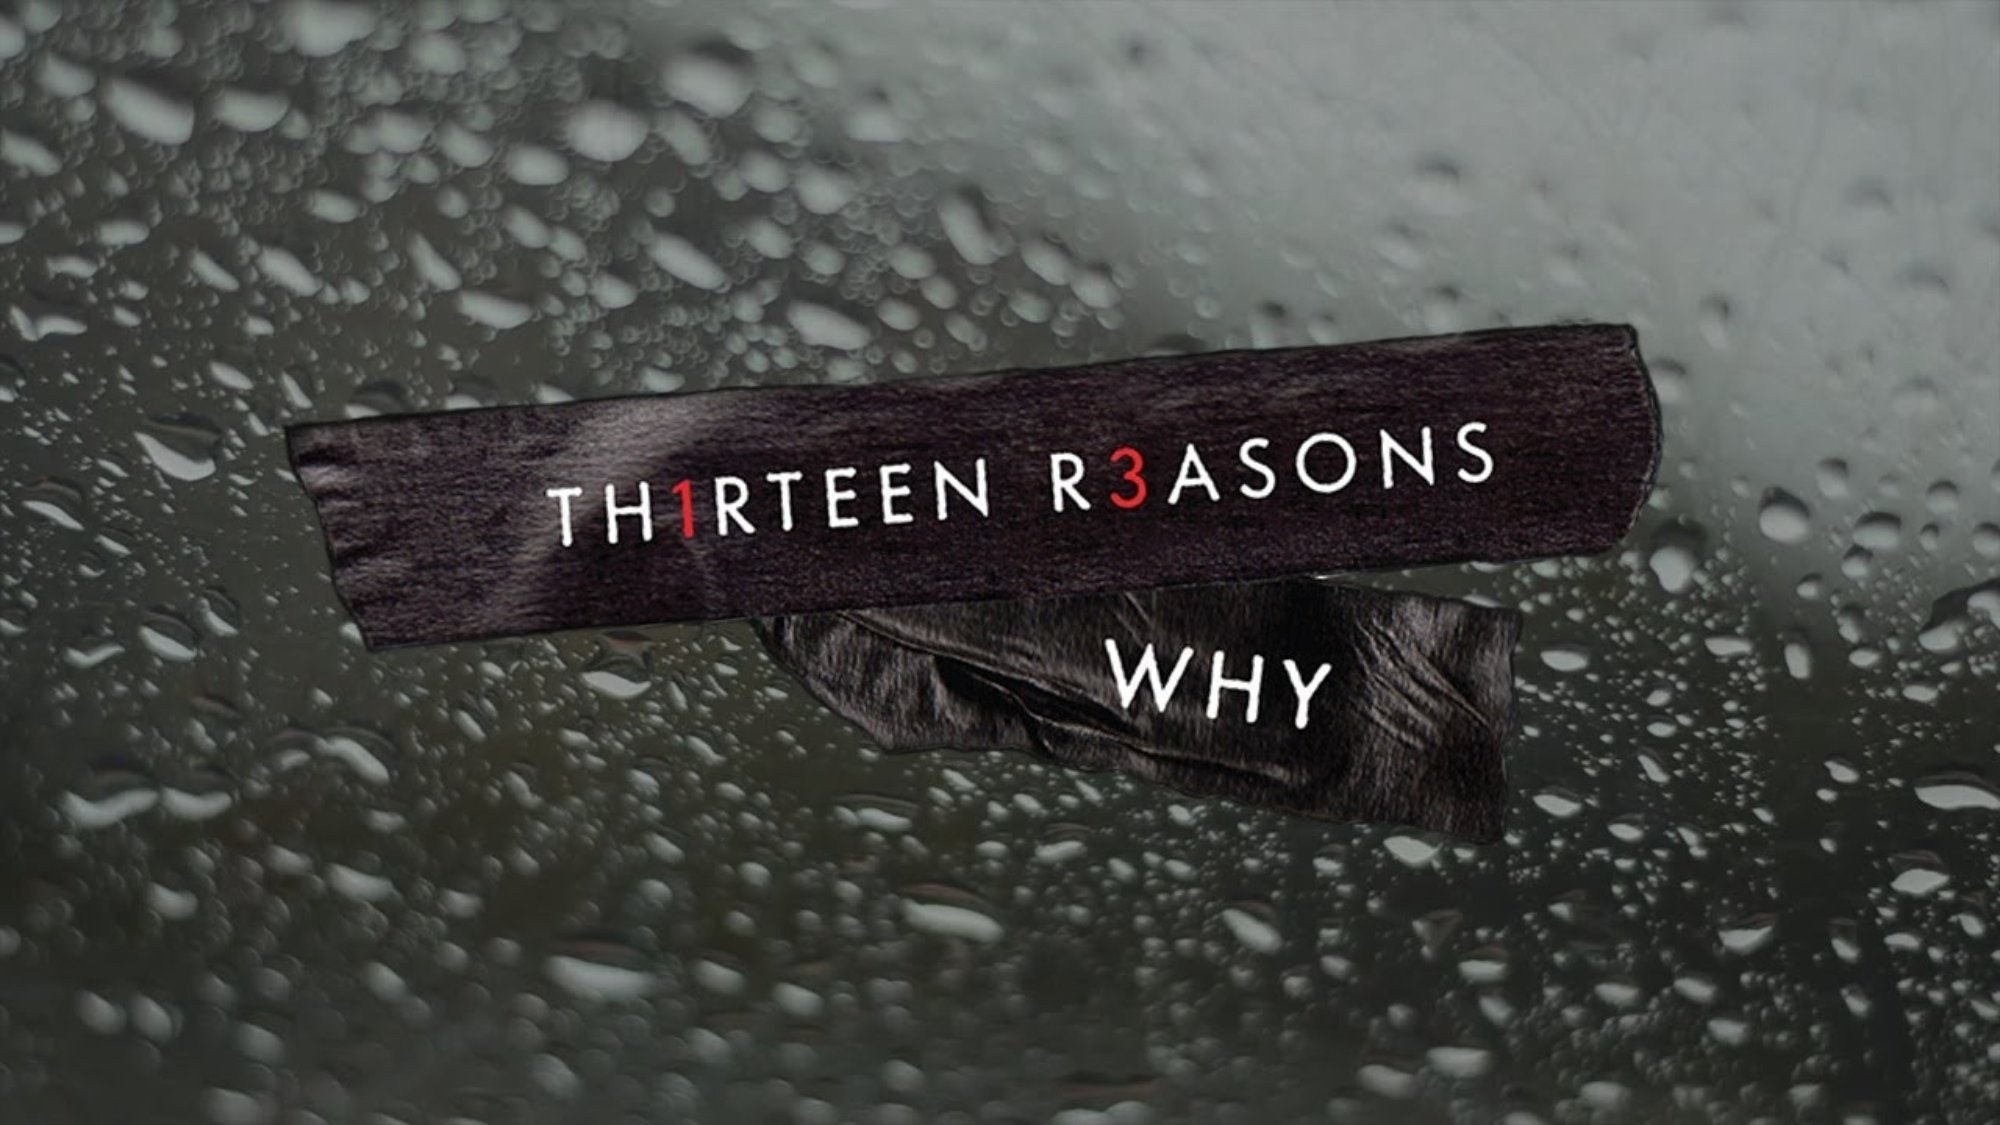 13 Resons Why - Netflix series